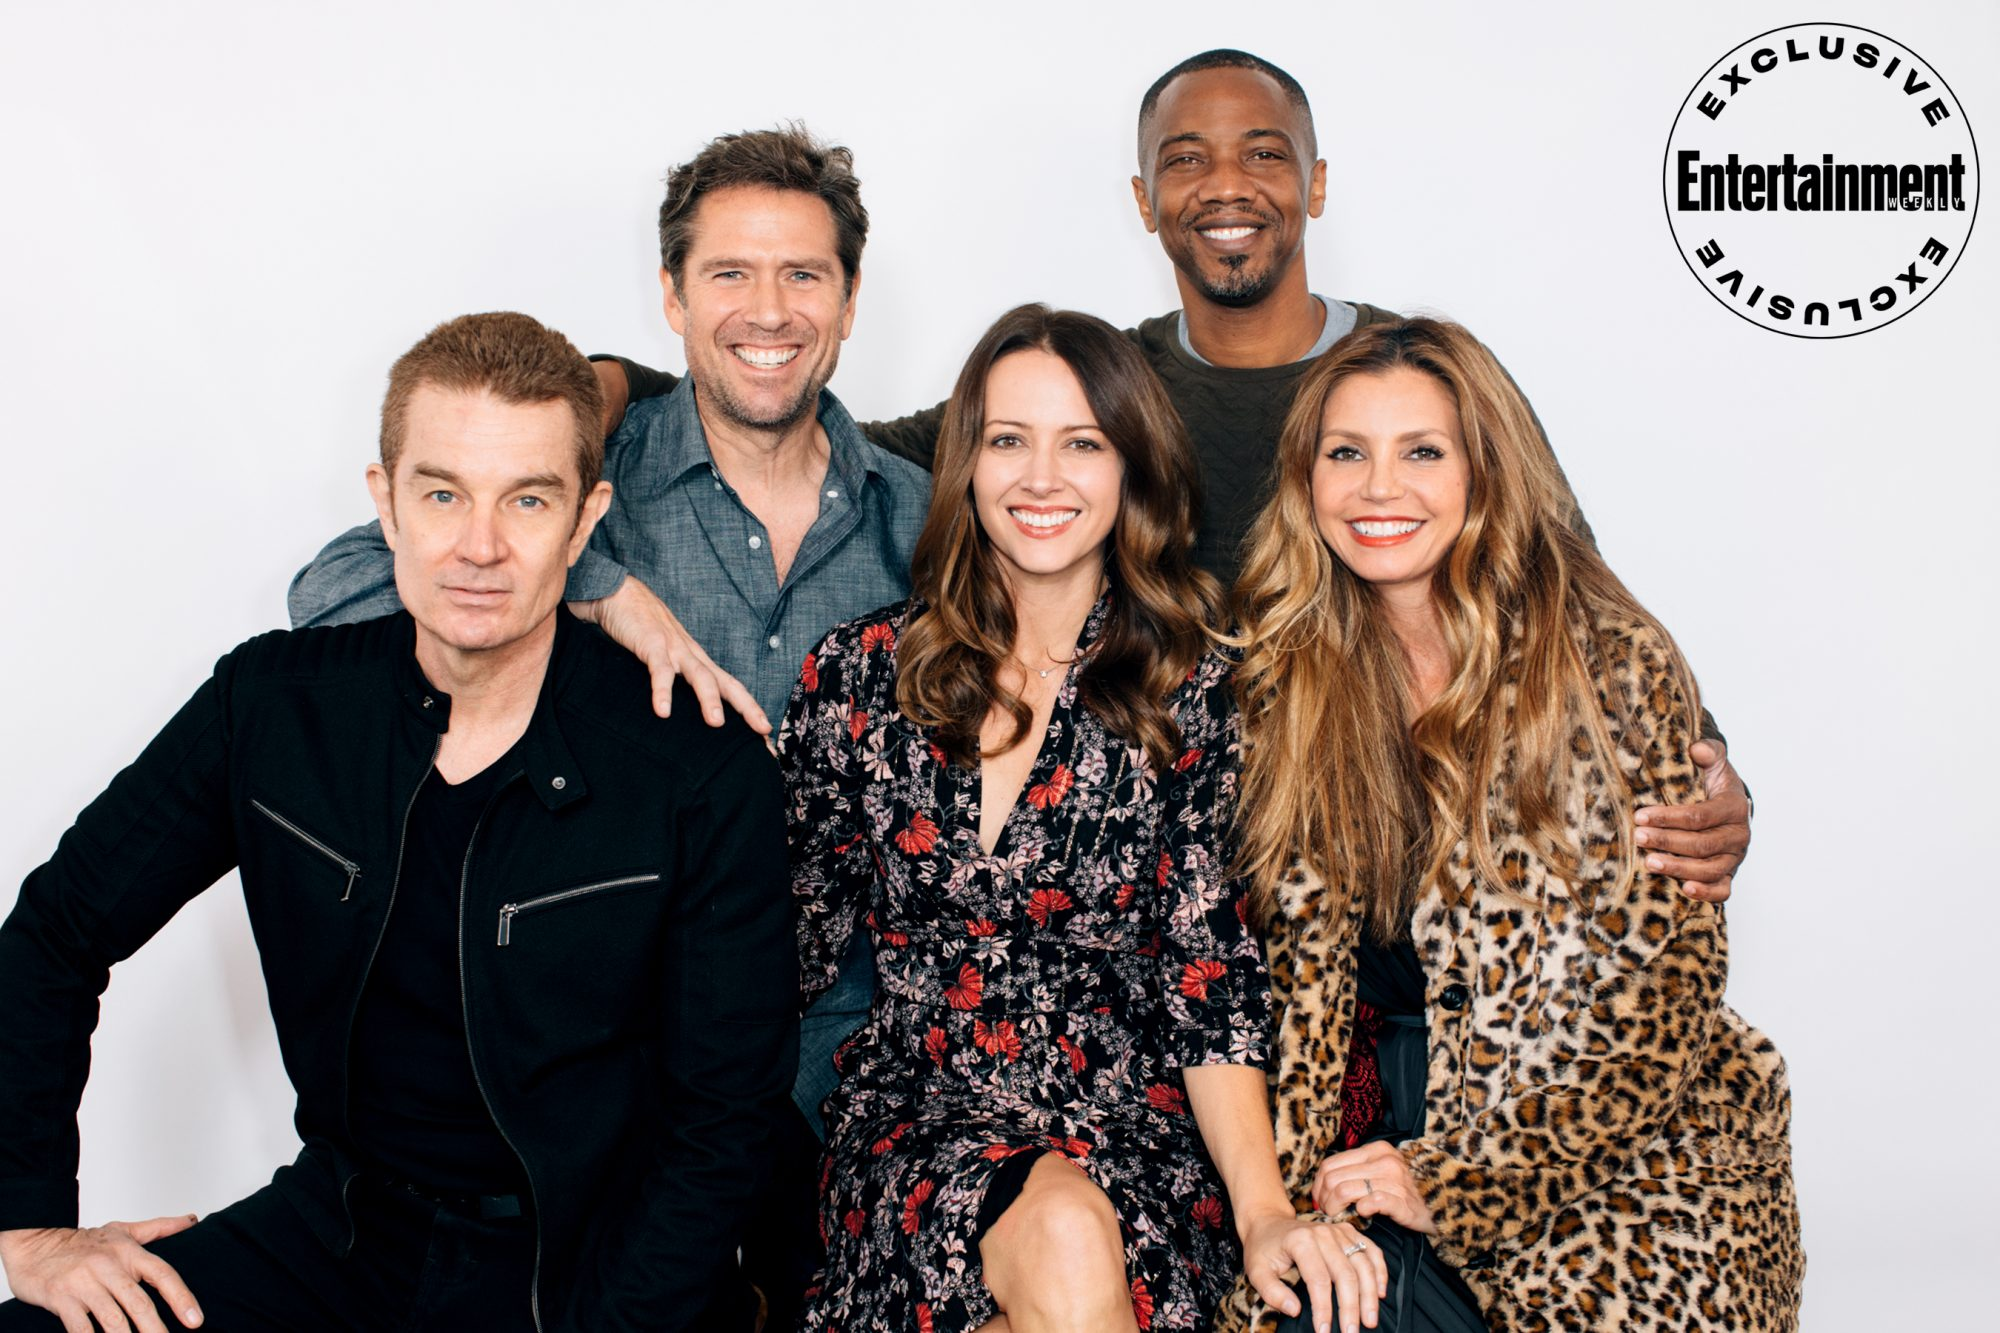 James Marsters, Alexis Denisof, Amy Acker, J. August Richards, and Charisma Carpenter from Angel